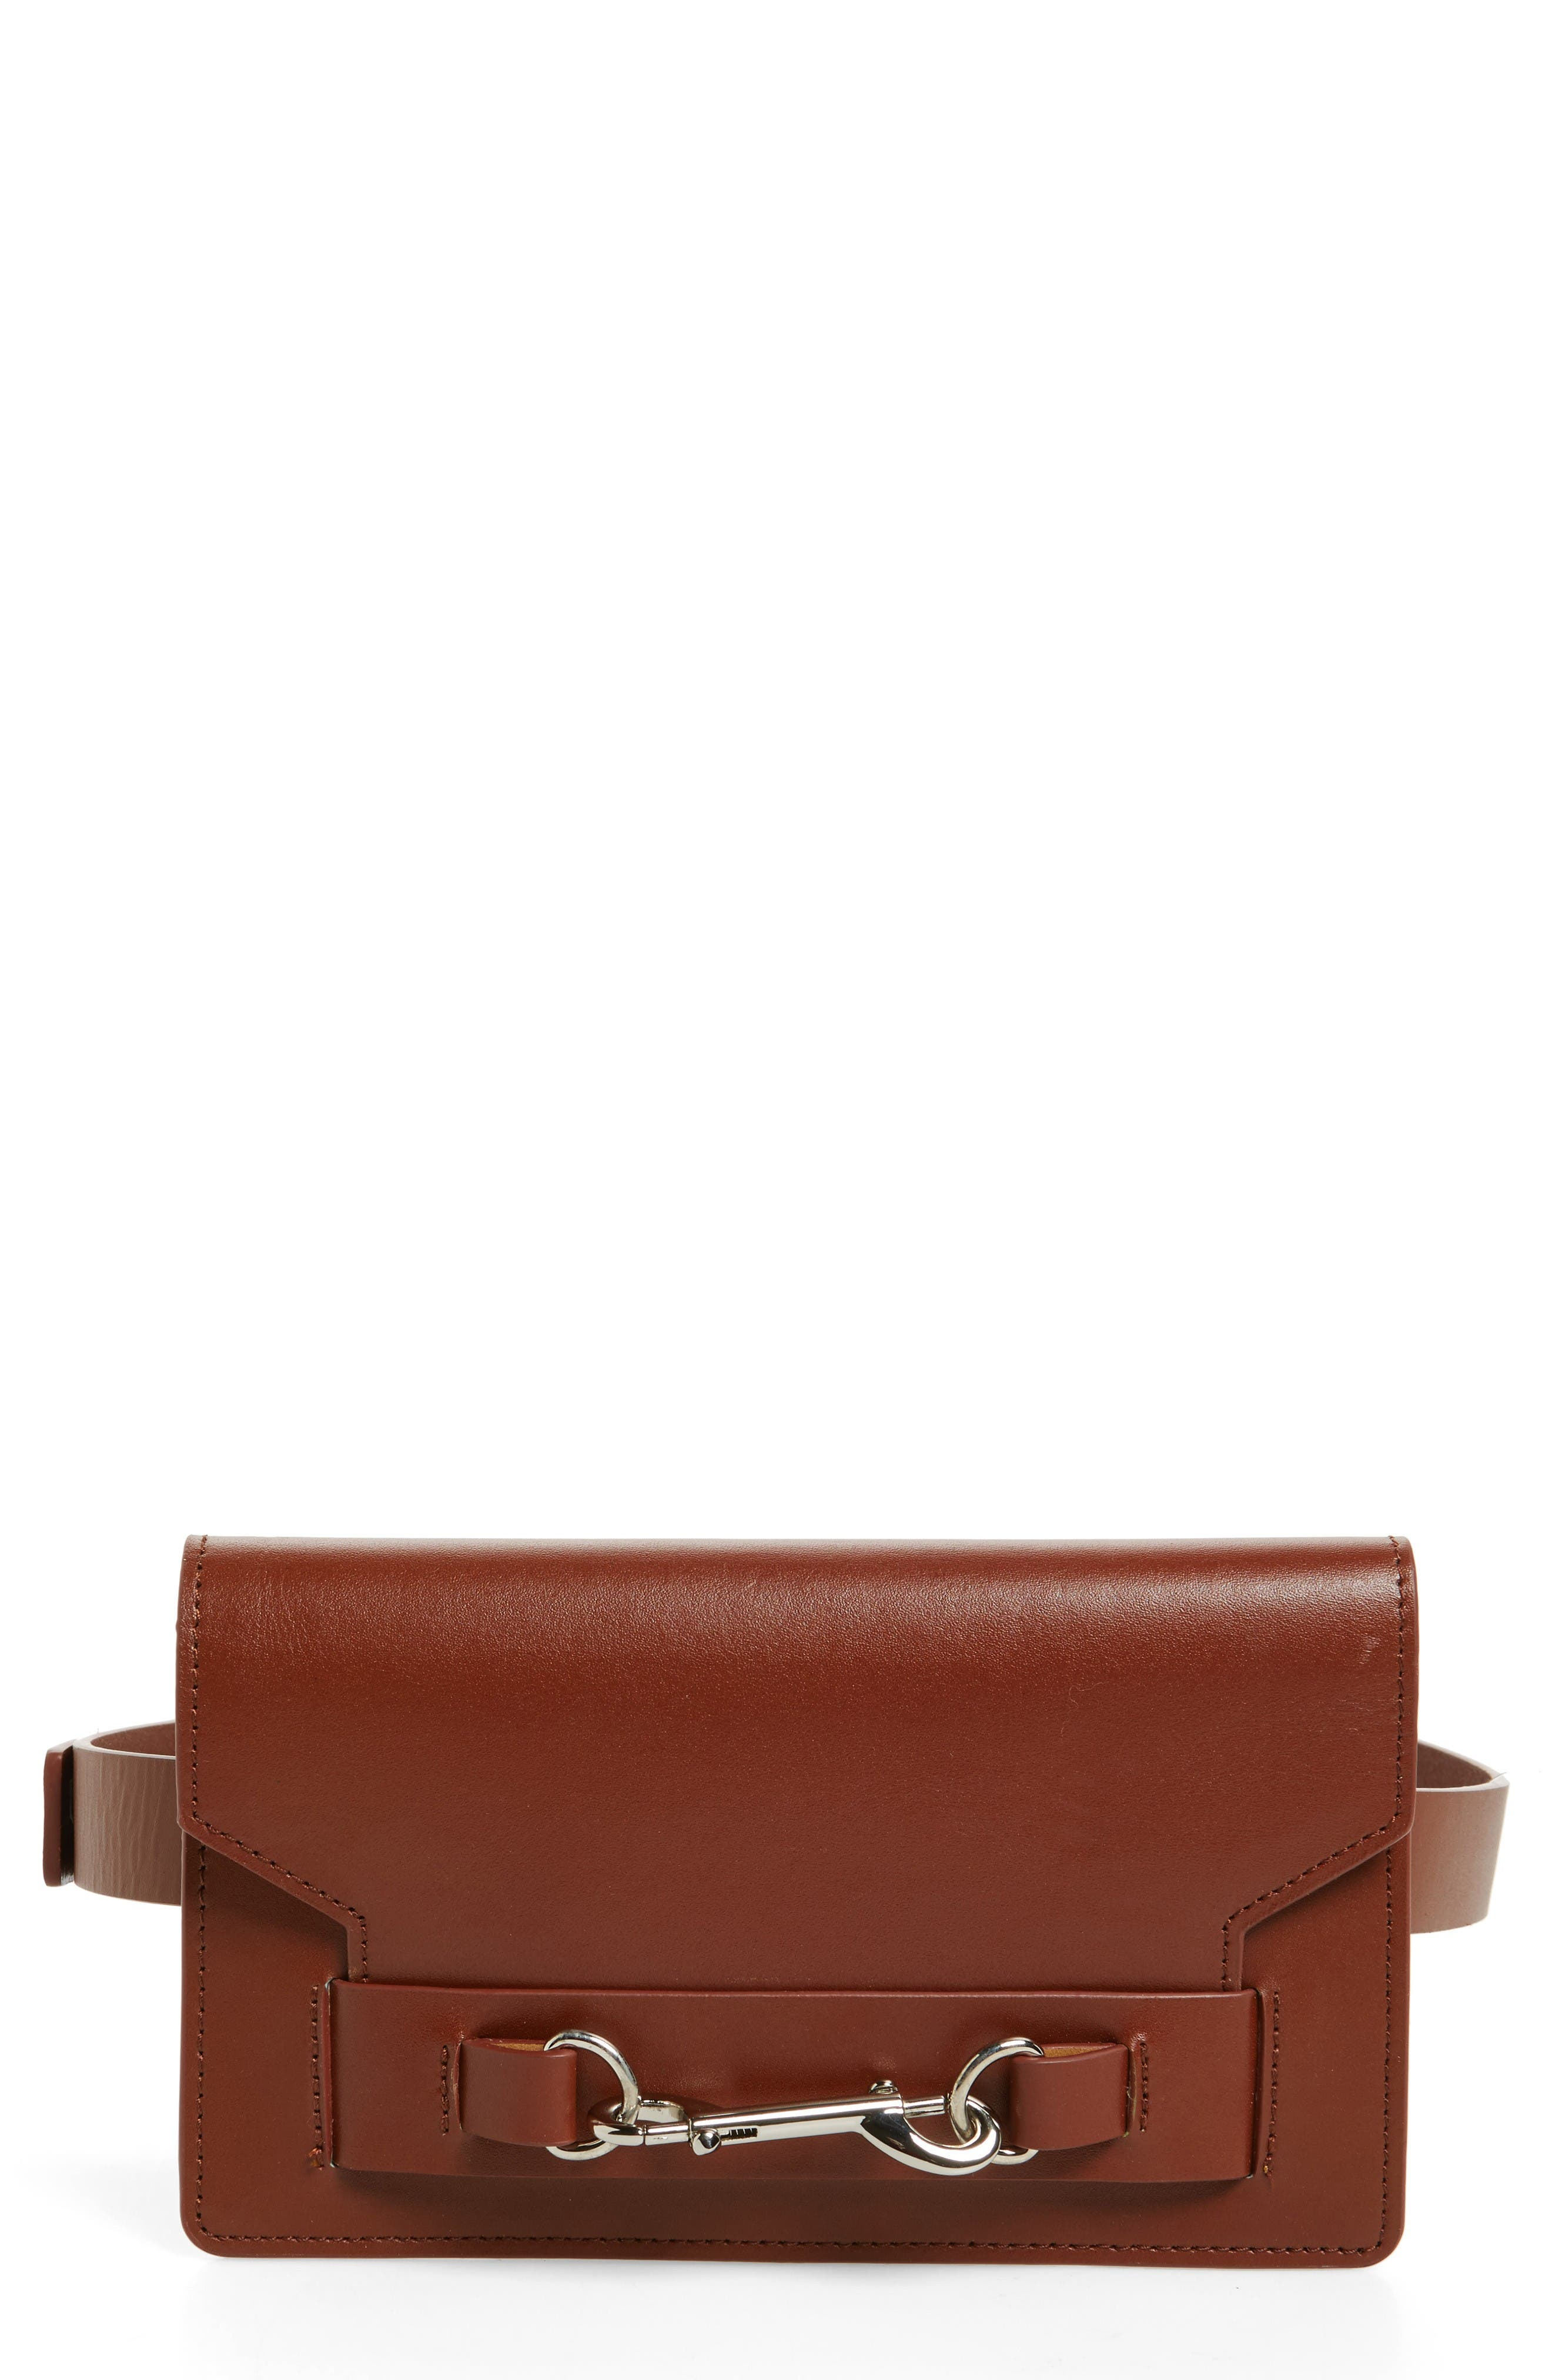 Main Image - Rebecca Minkoff Belt Bag